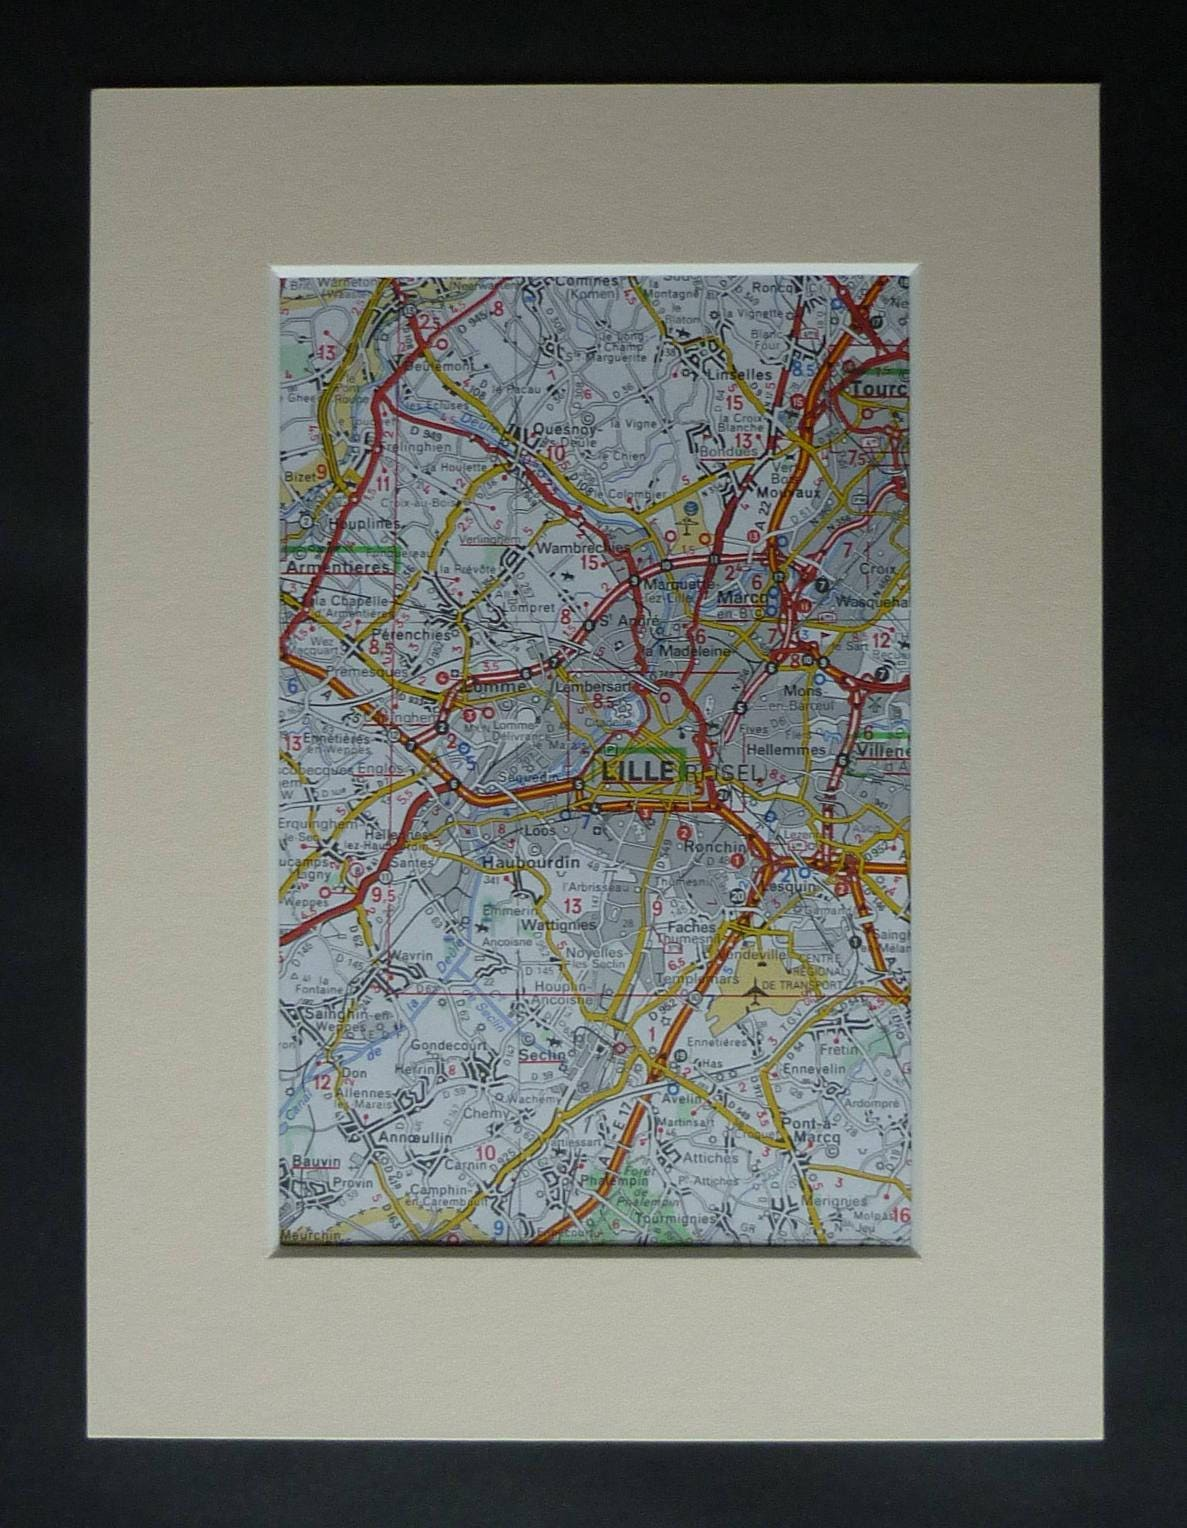 Map France 945.1980s Vintage Map Of Lille France Gift Available Framed French Art Haubourdin Picture Lomme Wall Art Armentieres Decor Quesnoy Print